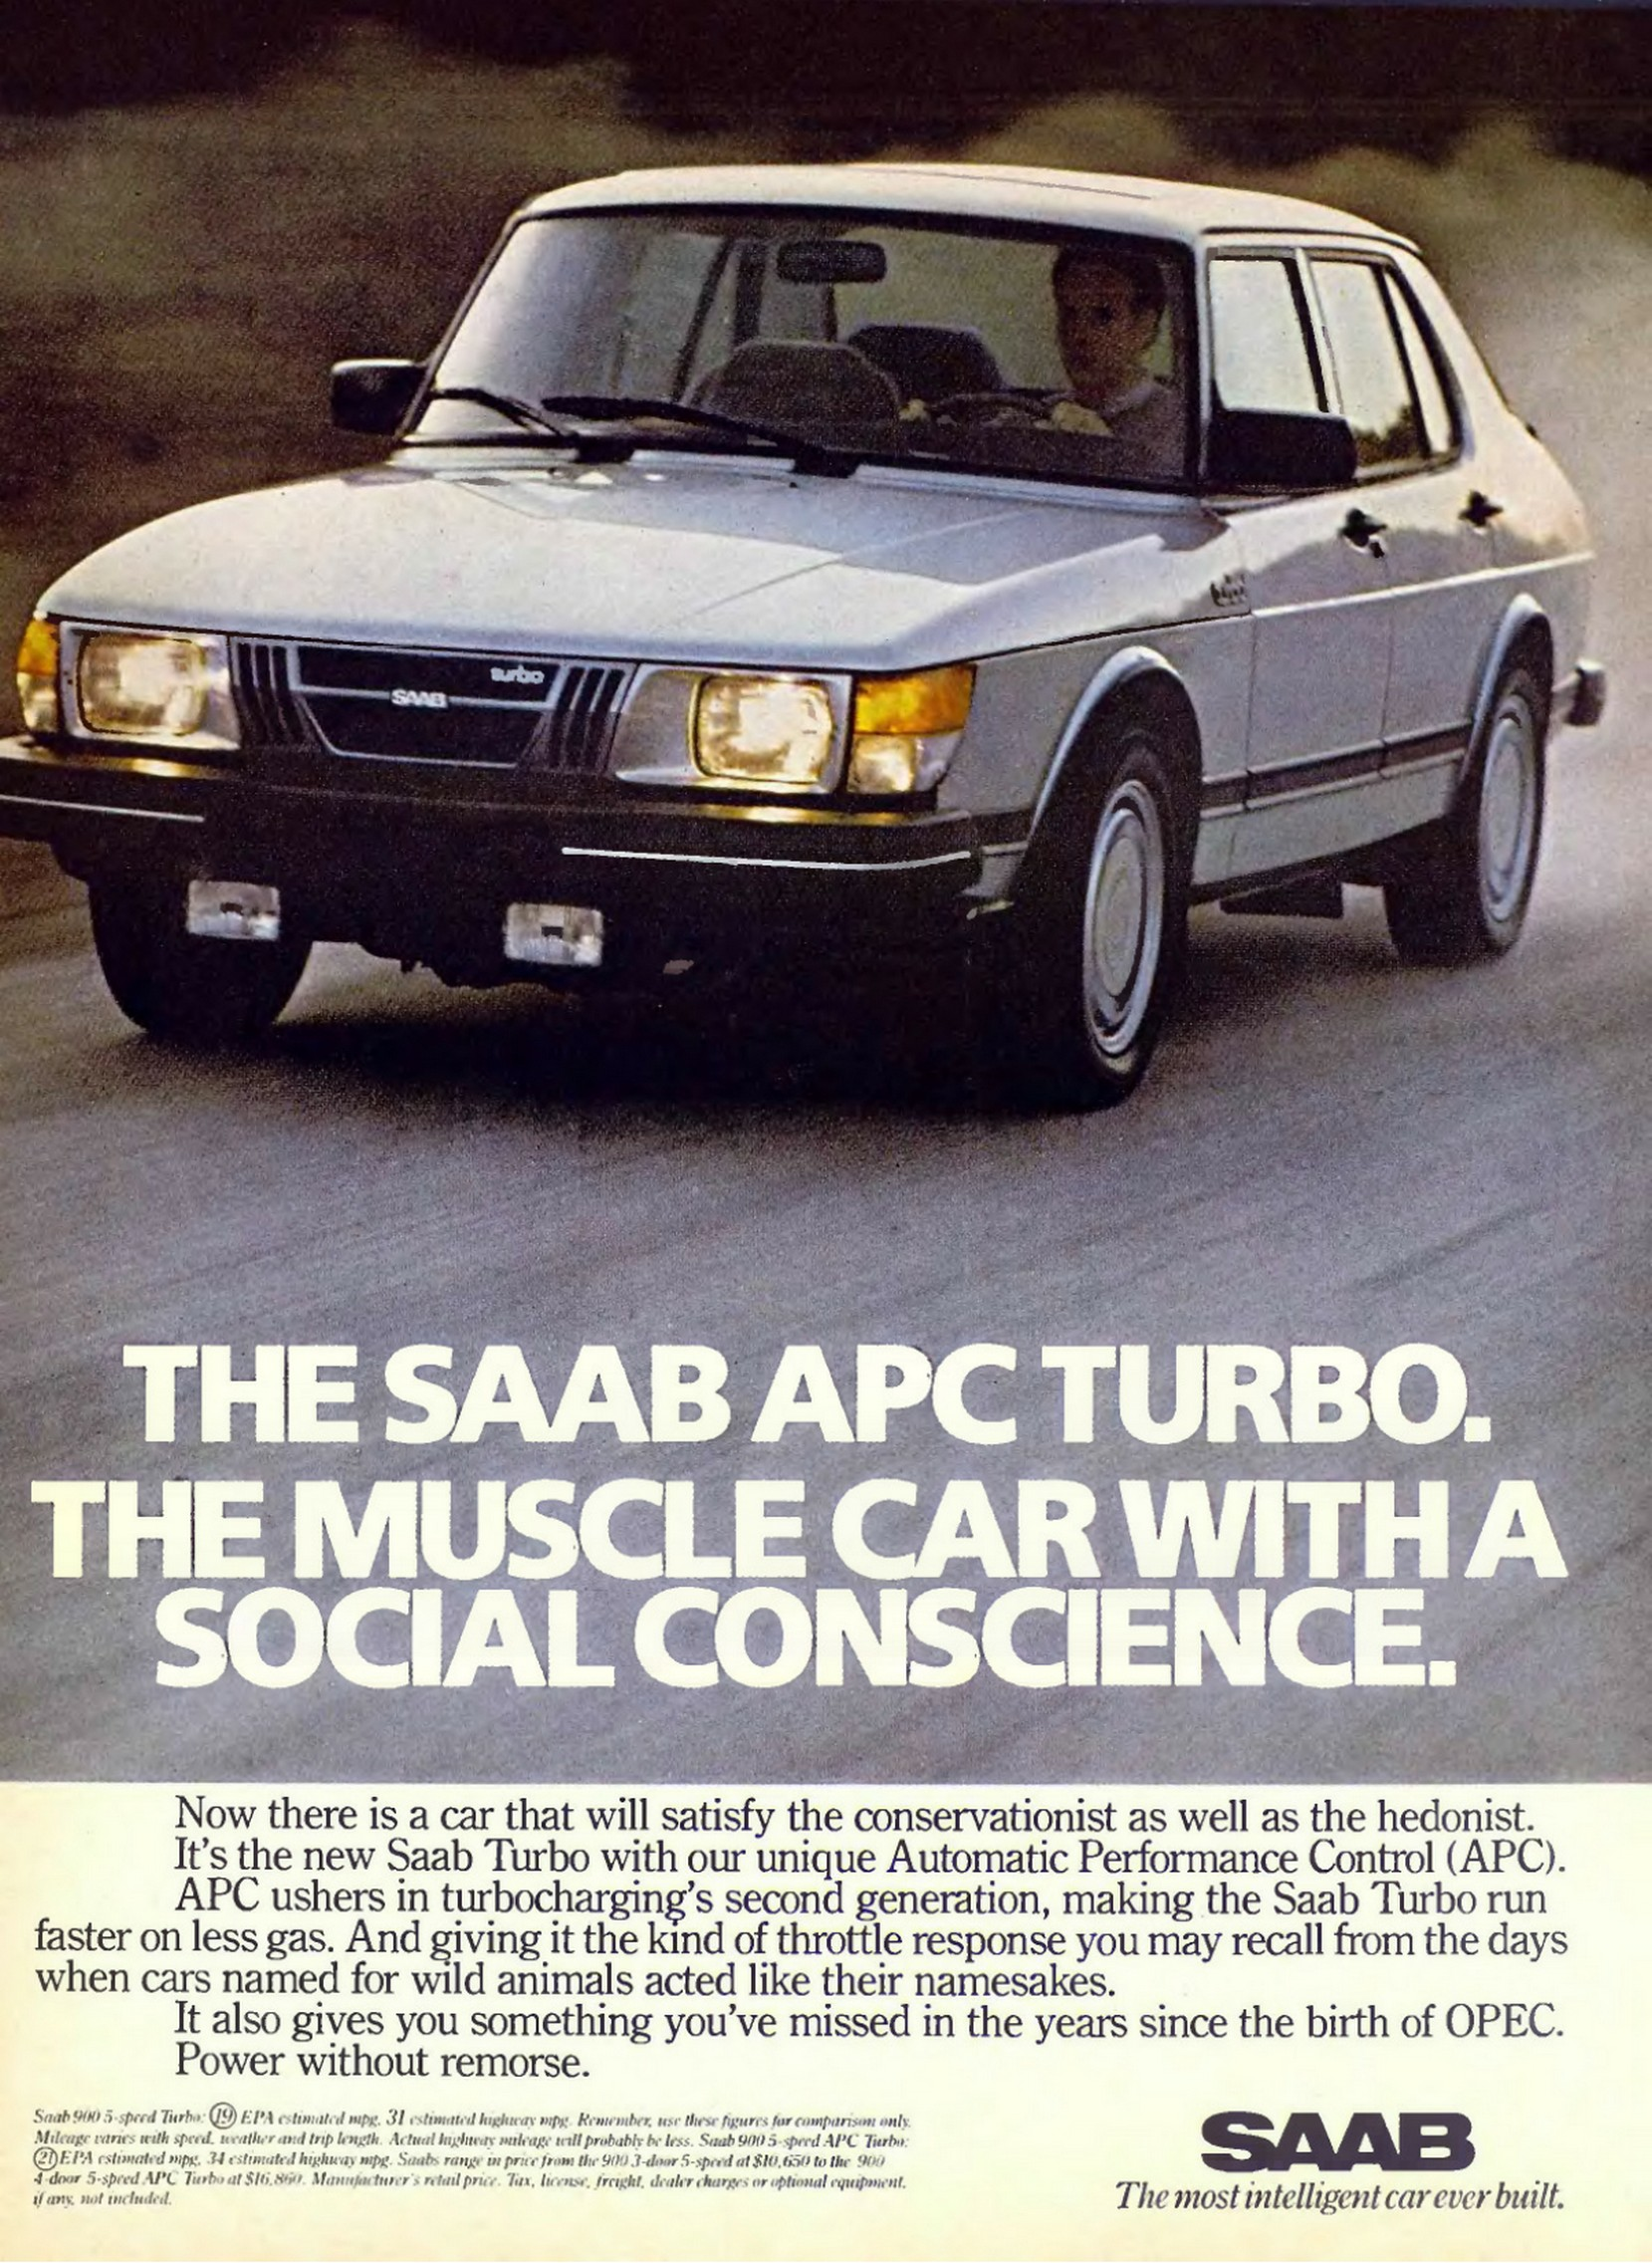 1982-Saab-900-APC-Turbo.-The-Muscle-Car-With-A-Social-Conscience